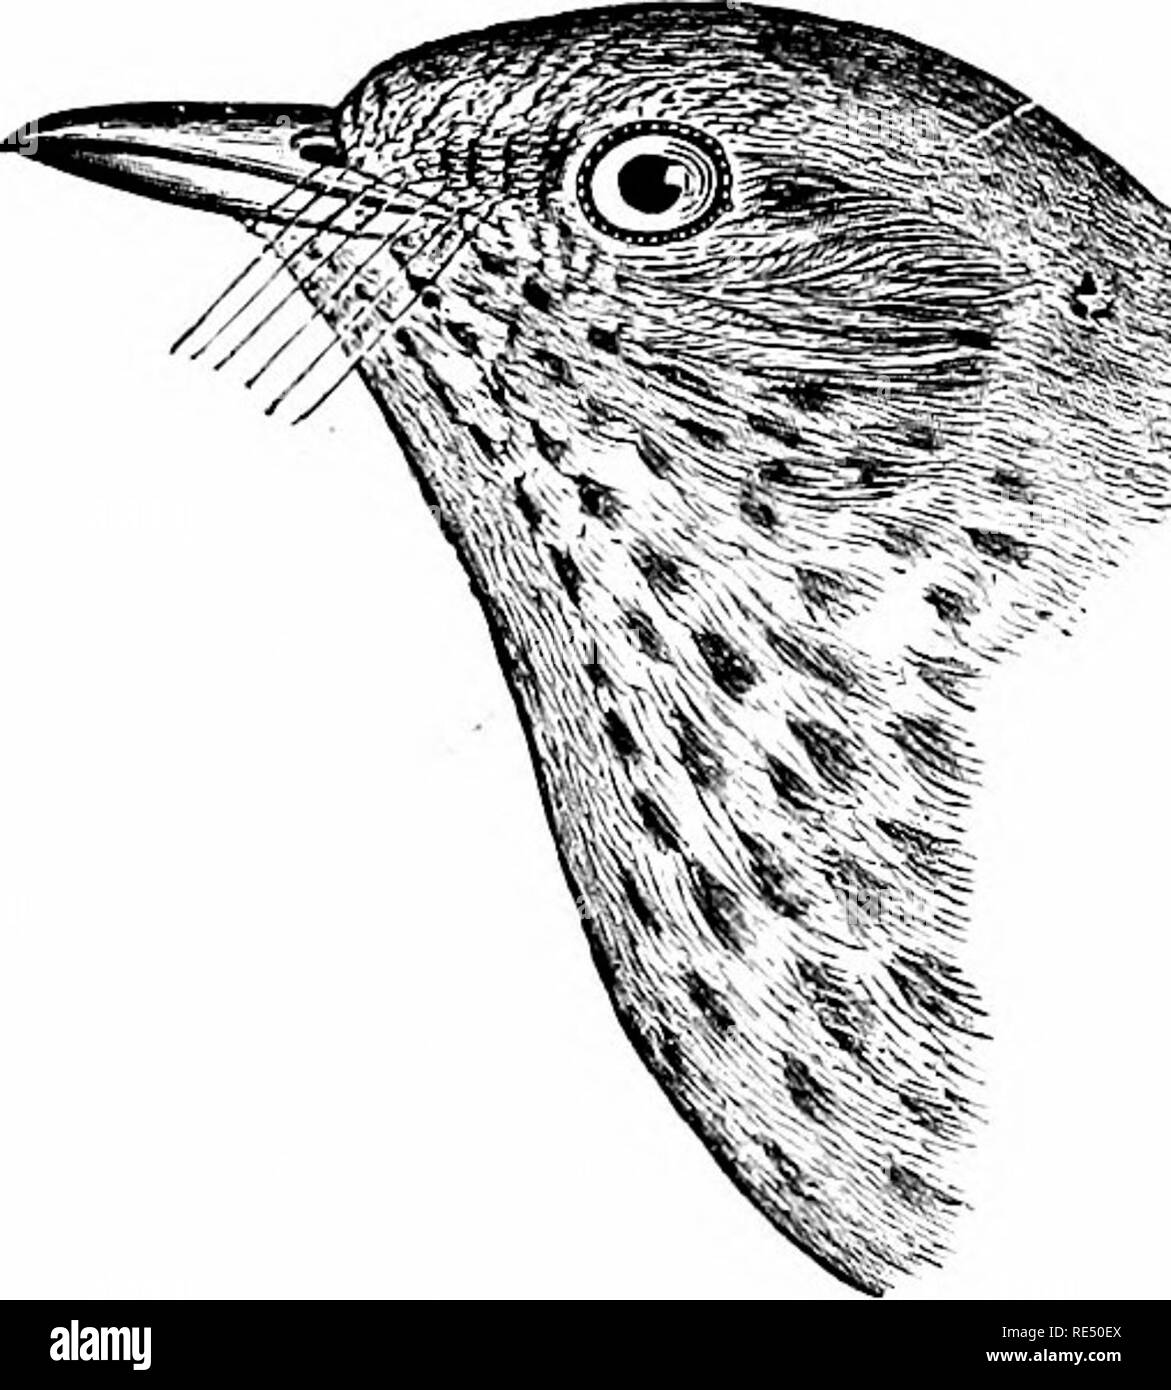 . The birds of eastern North America known to occur east of the nineteenth meridian ... Birds. Ss >- Back, rump, and upper tail coverts, olive, about the gaine color; eye ring, cheeks, aud lores, pale buff; no wliite on wing coverts. 01ive°backed Thrush. Turdns ustulatns sieahisiDu, See No. 564.. Please note that these images are extracted from scanned page images that may have been digitally enhanced for readability - coloration and appearance of these illustrations may not perfectly resemble the original work.. Cory, Charles B. (Charles Barney), 1857-1921; Field Columbian Museum. Chicago, Stock Photo